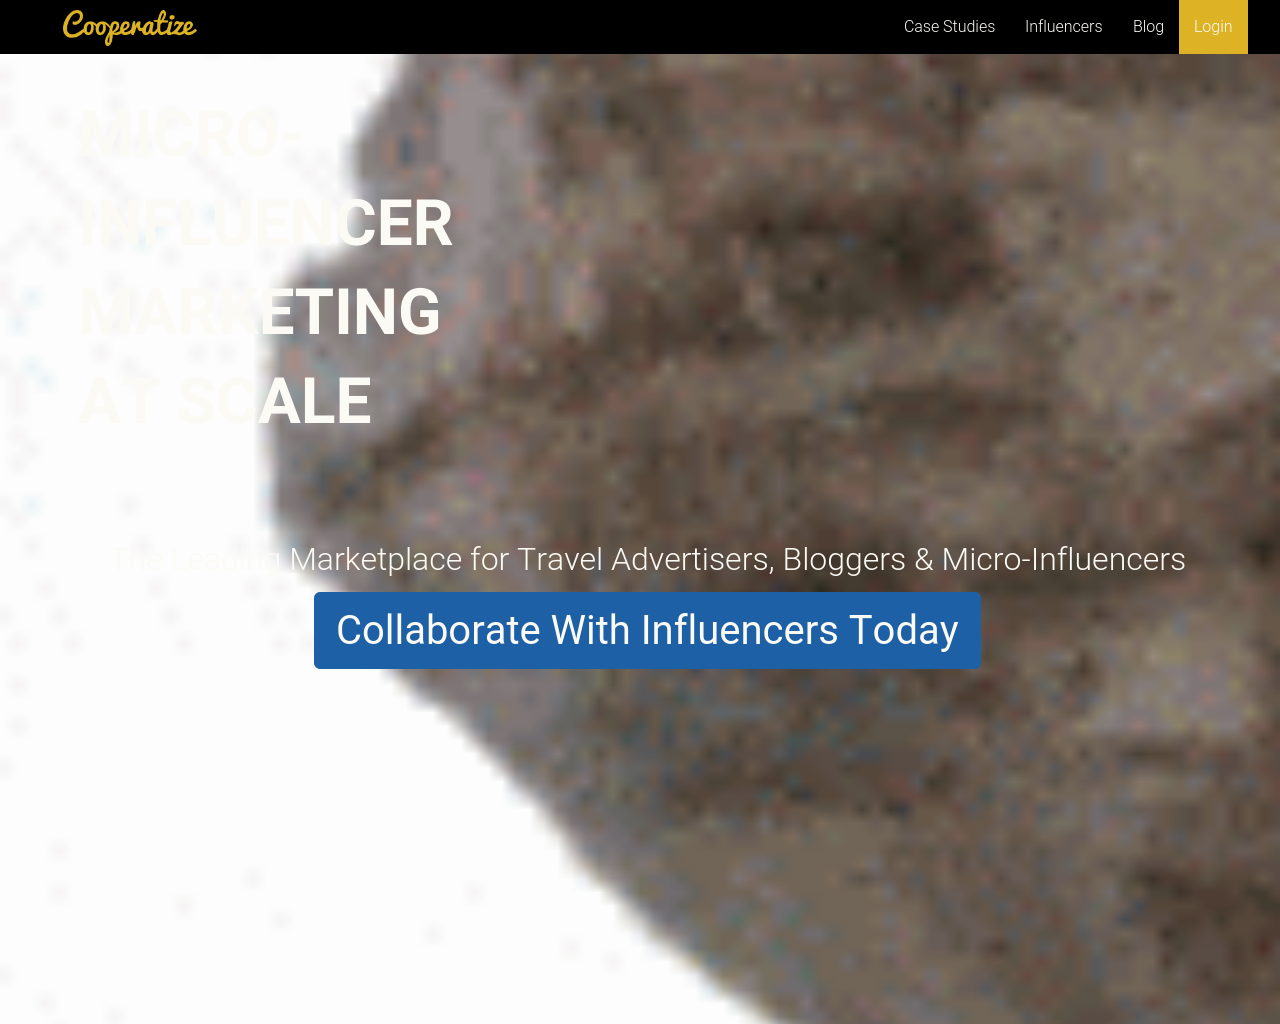 Cooperatize-Advertising-Reviews-Pricing